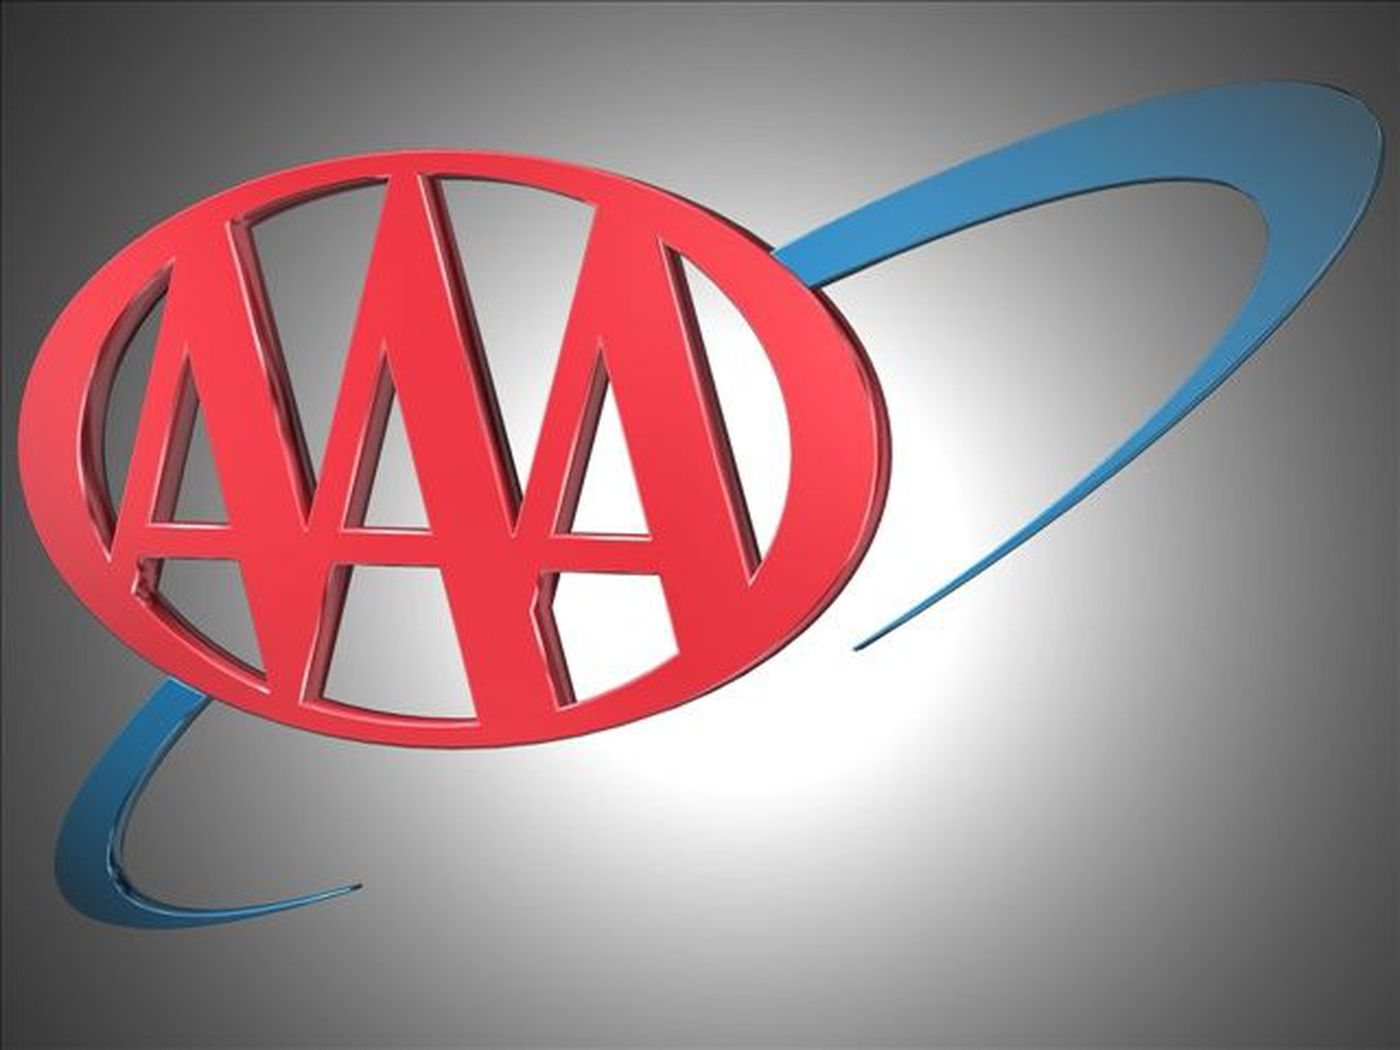 Aaa Arizona Recaps 2013 Gas Prices  Projects Costs For 2014